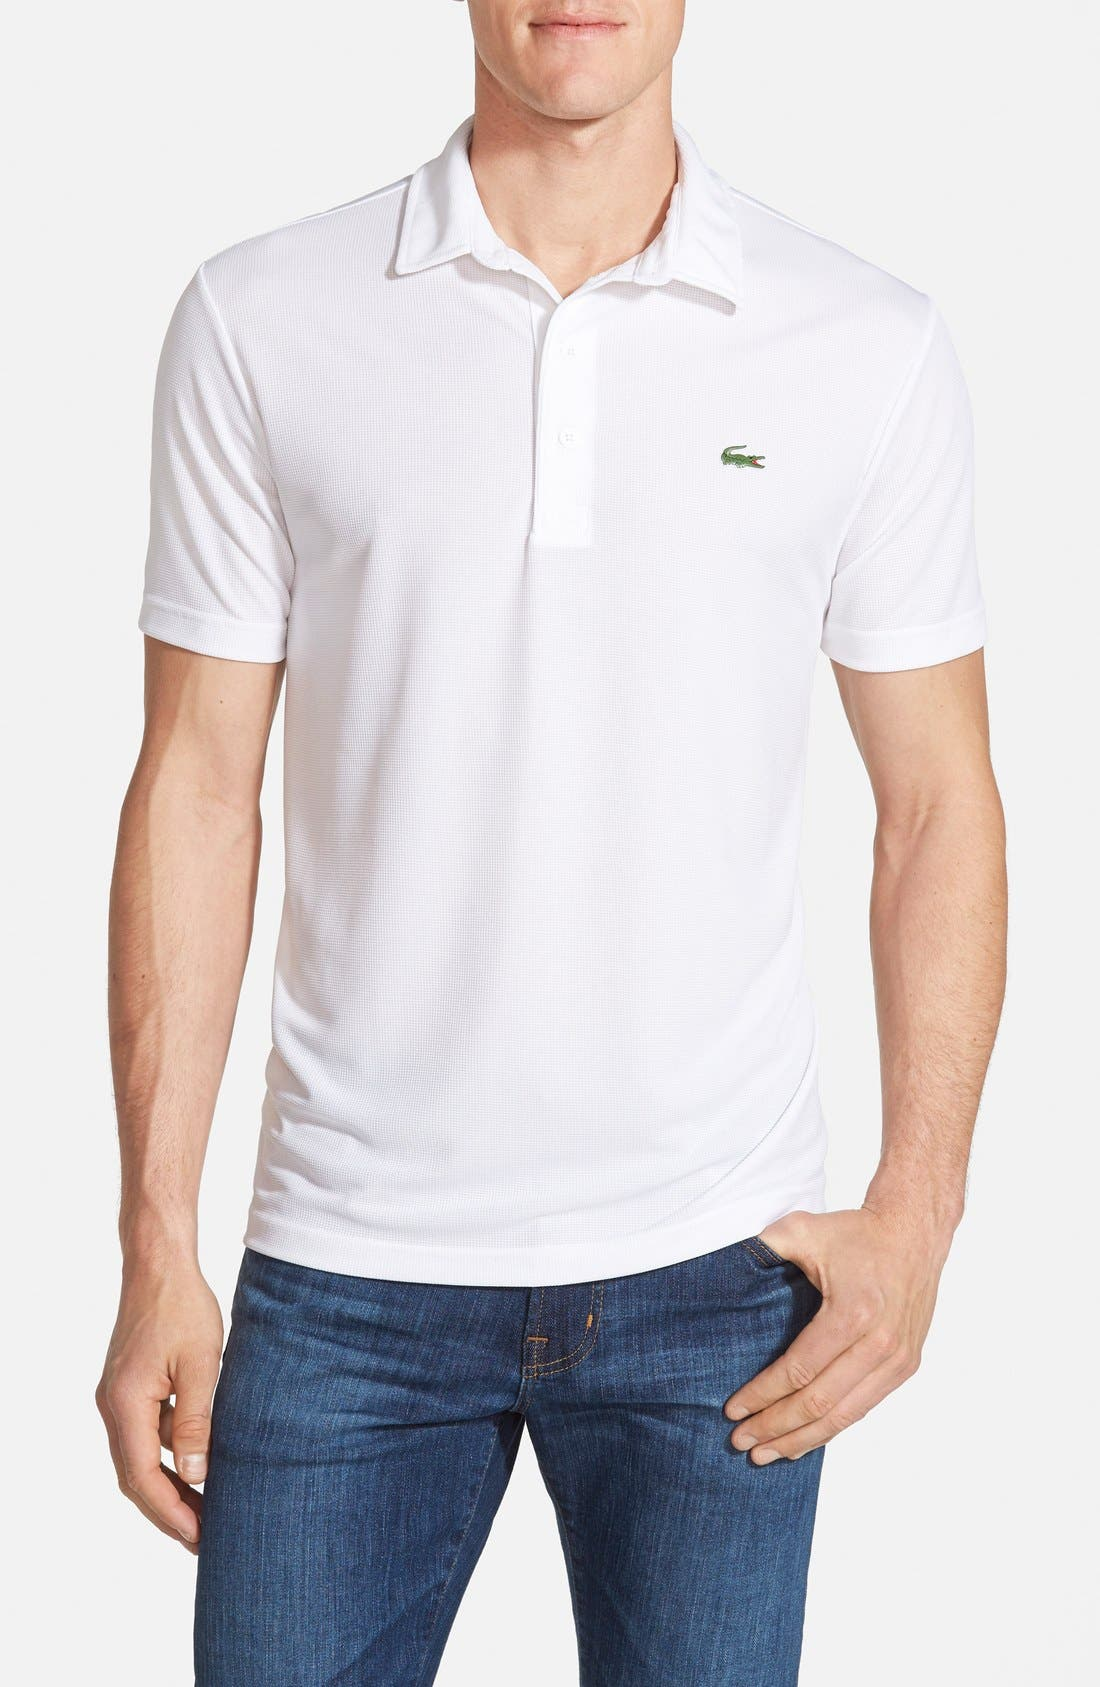 Lacoste Ultra Dry Piqué Golf Polo